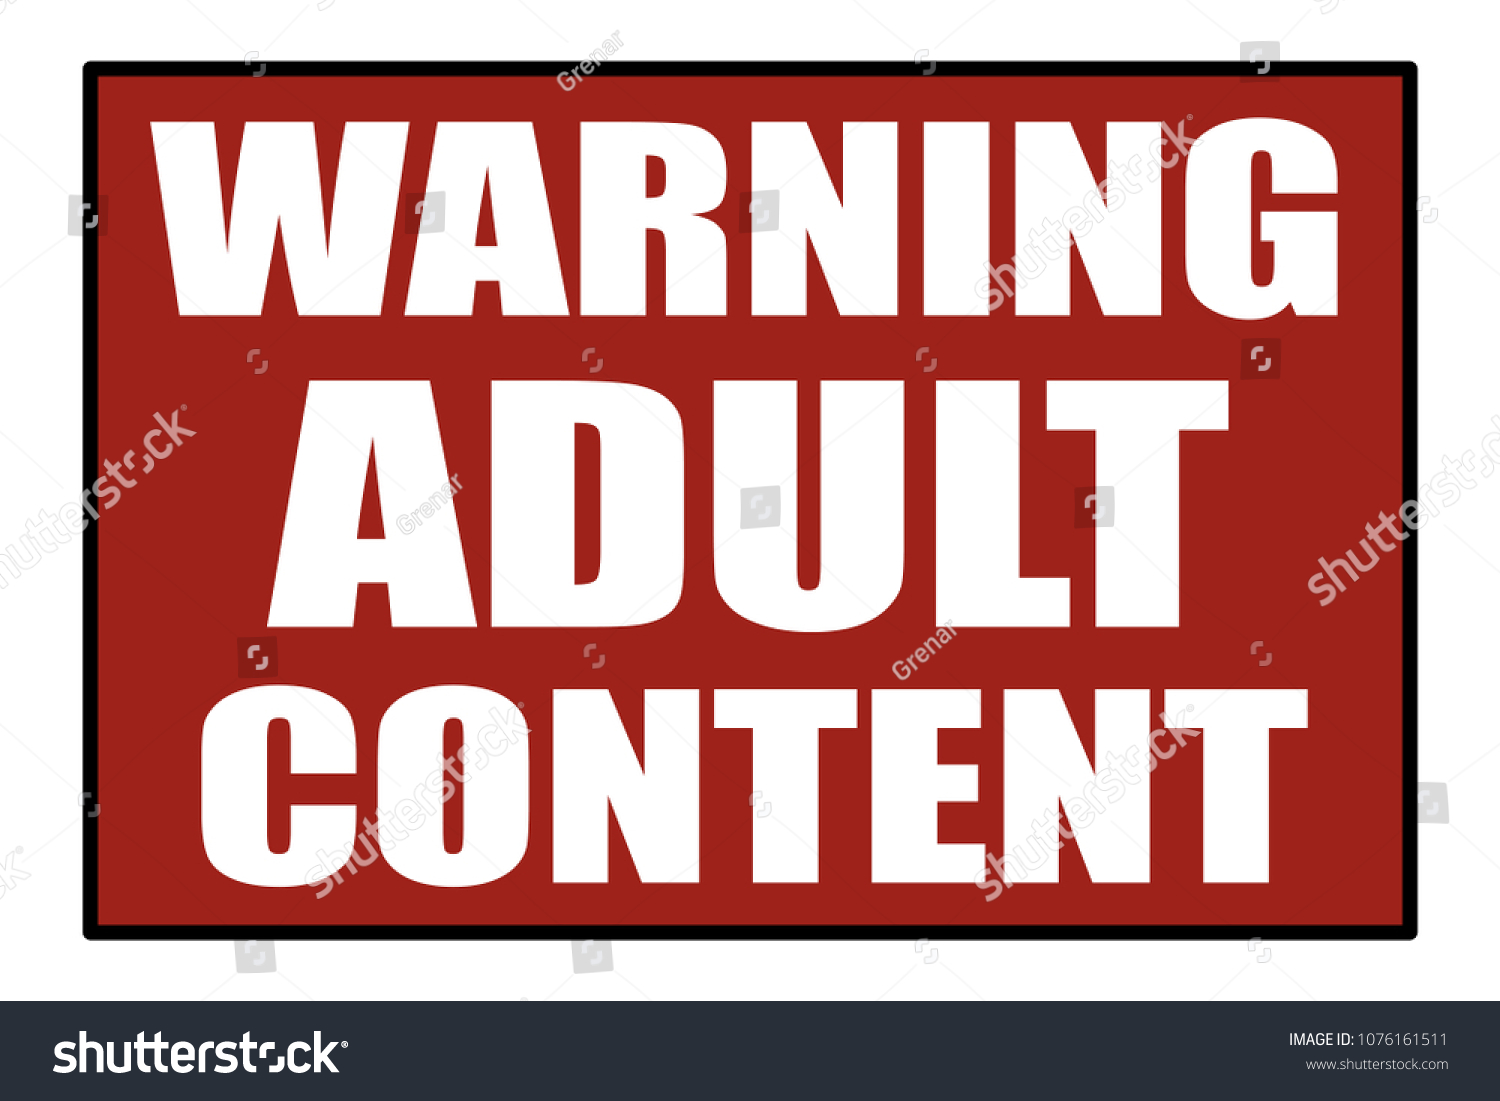 A red sign message label, with the text Warning adult content.